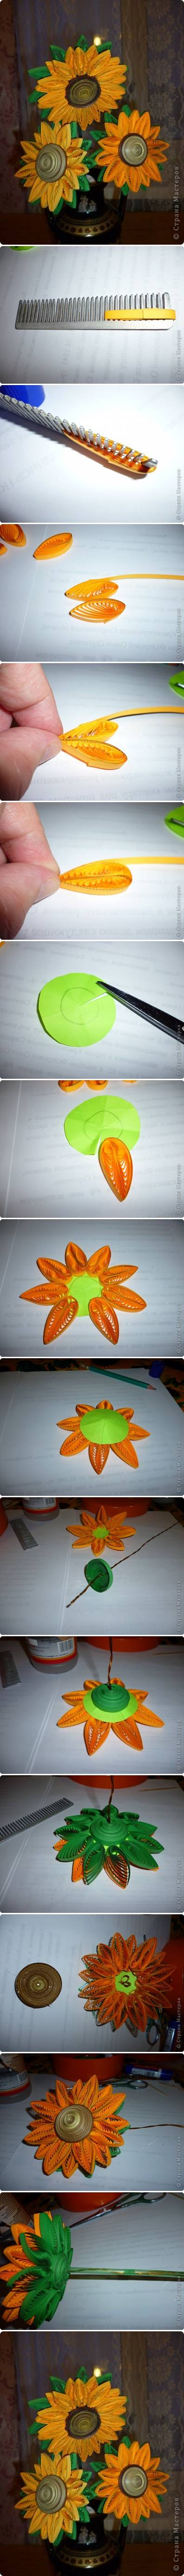 How to make Quilling Sunflower step by step DIY tutorial instructions